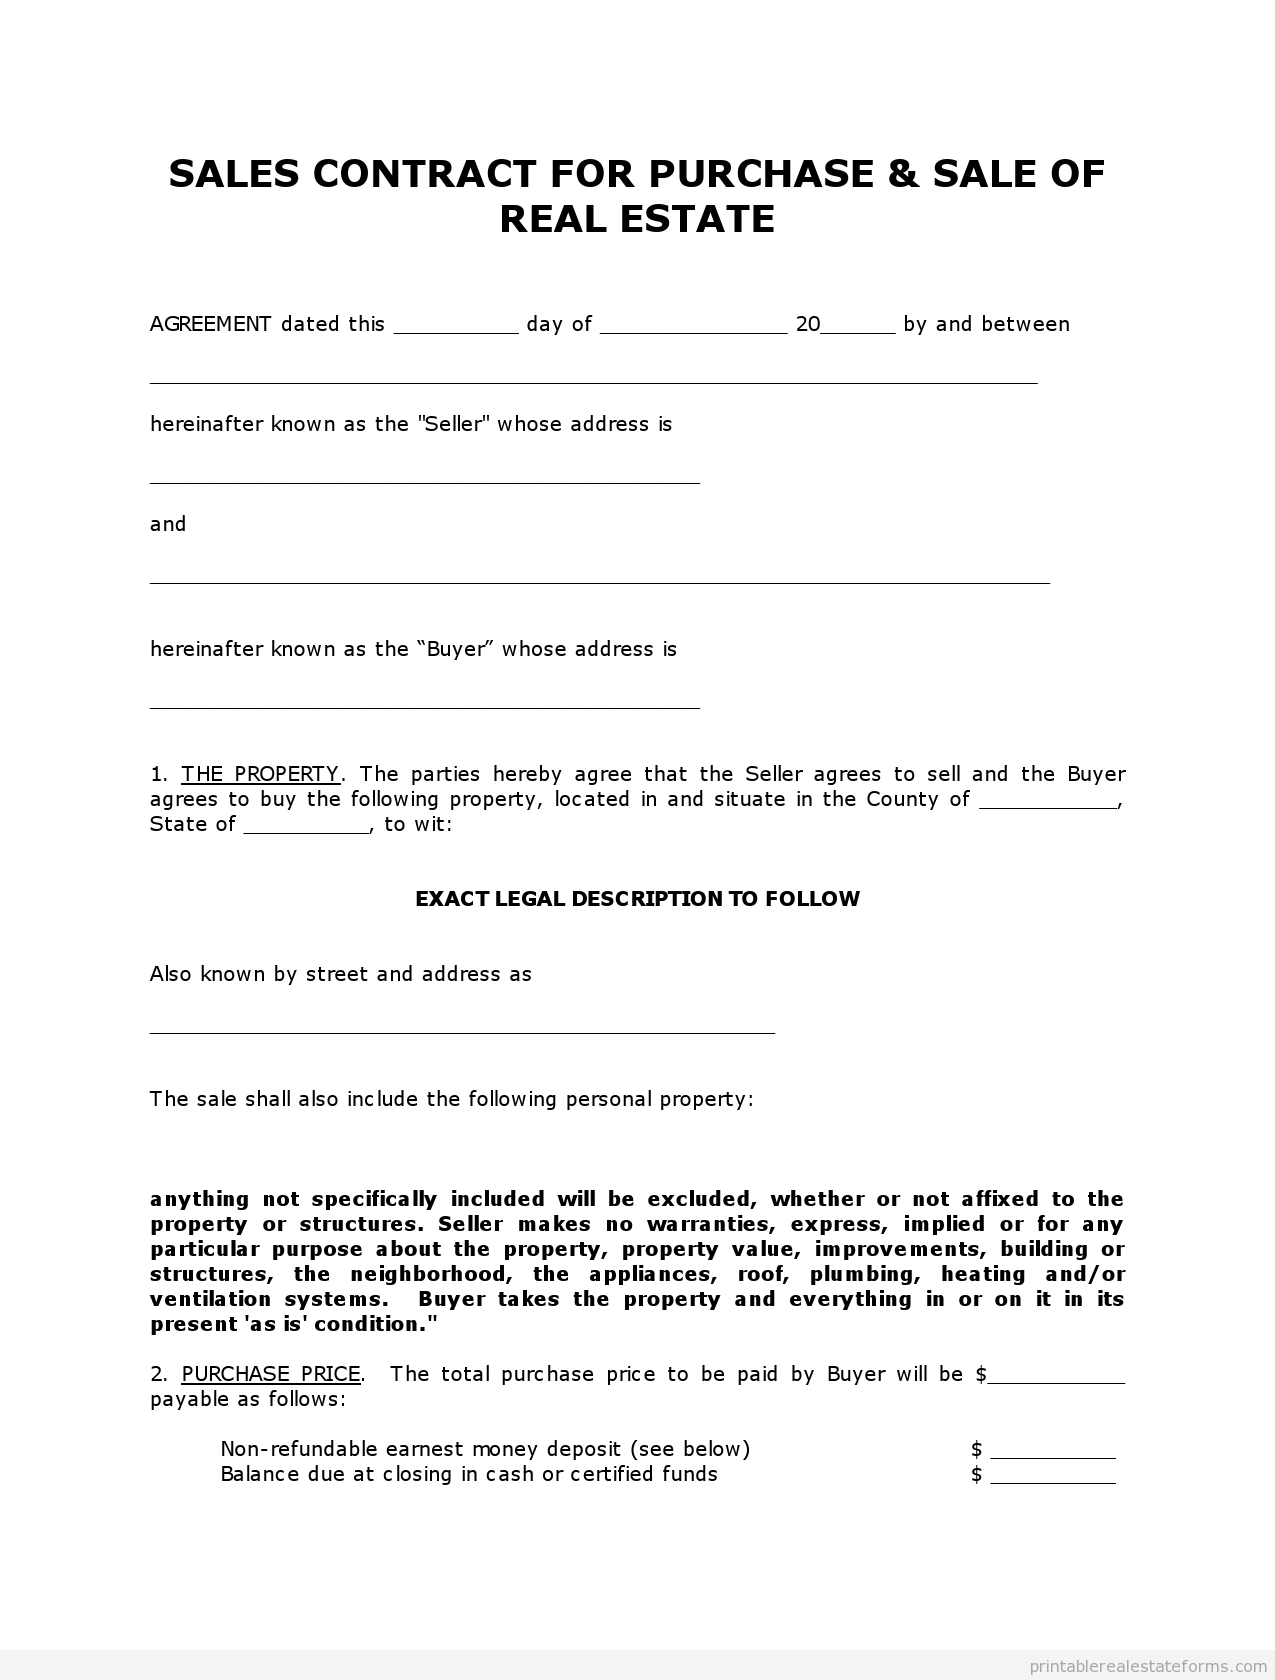 House And Flat Share Agreement Contract Template In 2020 Real Estate Contract Purchase Agreement Contract Template